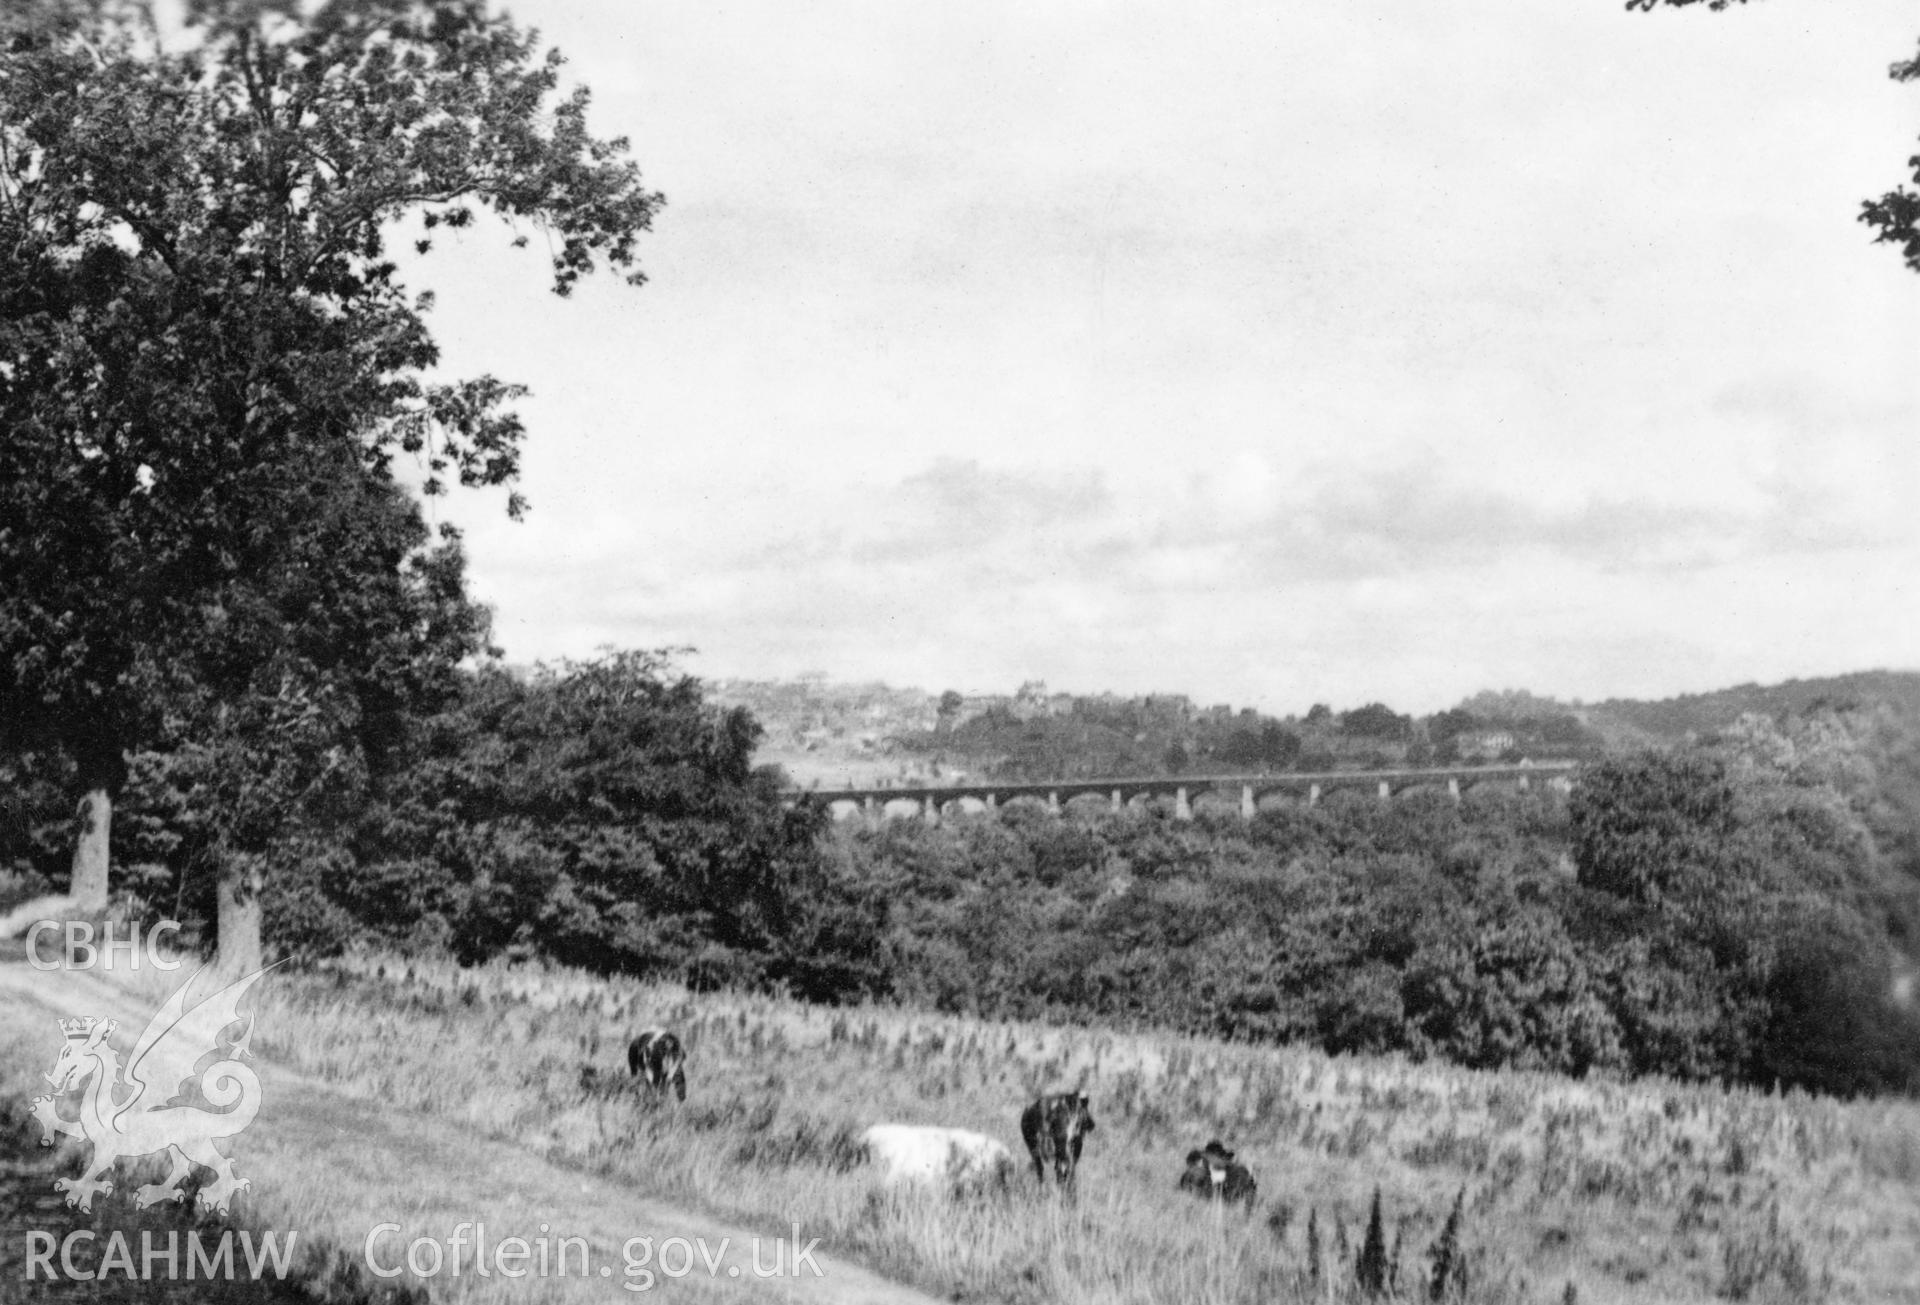 Pontcysyllte Aqueduct; digitized copy of a circa 1940 black and white photograph taken from a photo album loaned for copying by Anne Eastham.